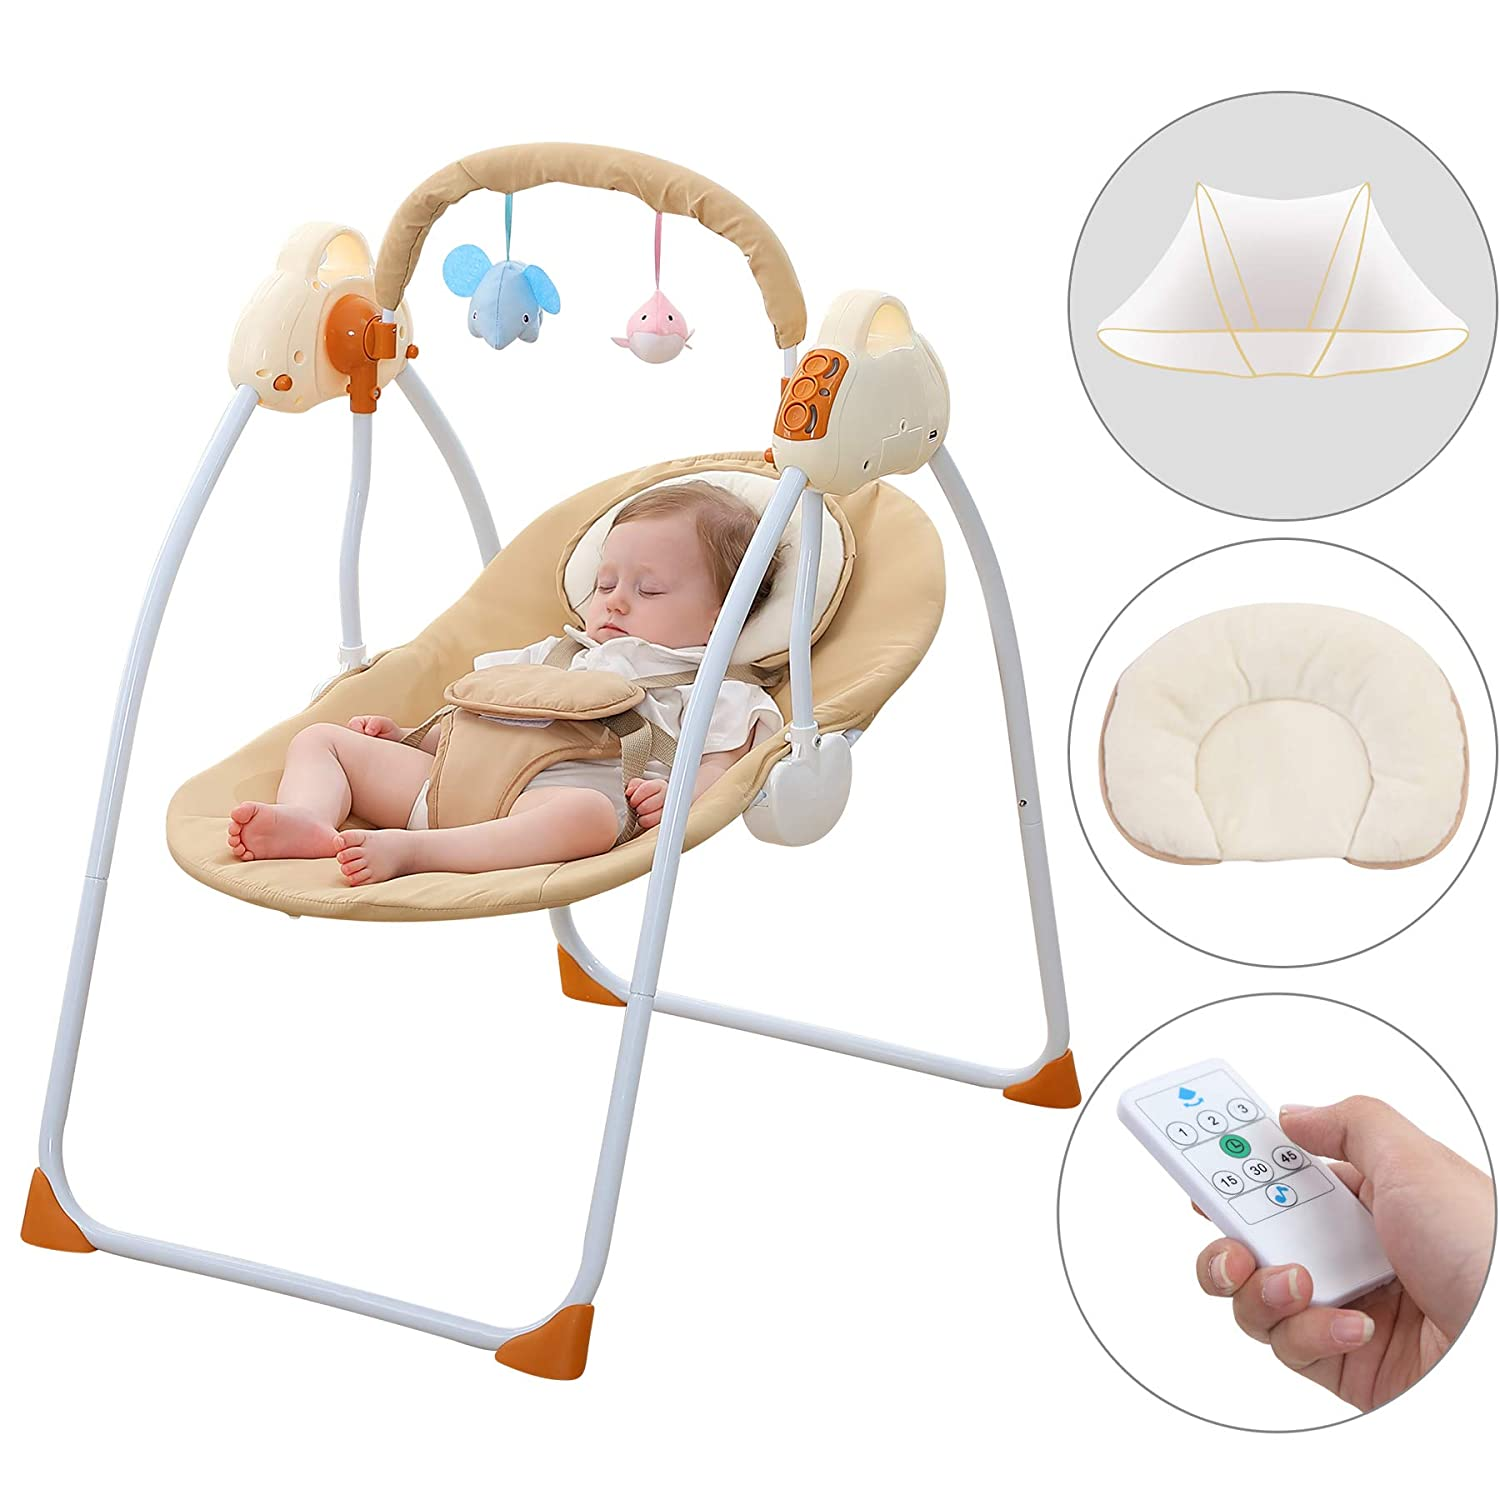 Admirable Cbbay Baby Swing Chair Electric Cradle Automatic Bassinet Baby Basket Bed Newborn Crib Rocking Music Sleeping Yellow Machost Co Dining Chair Design Ideas Machostcouk